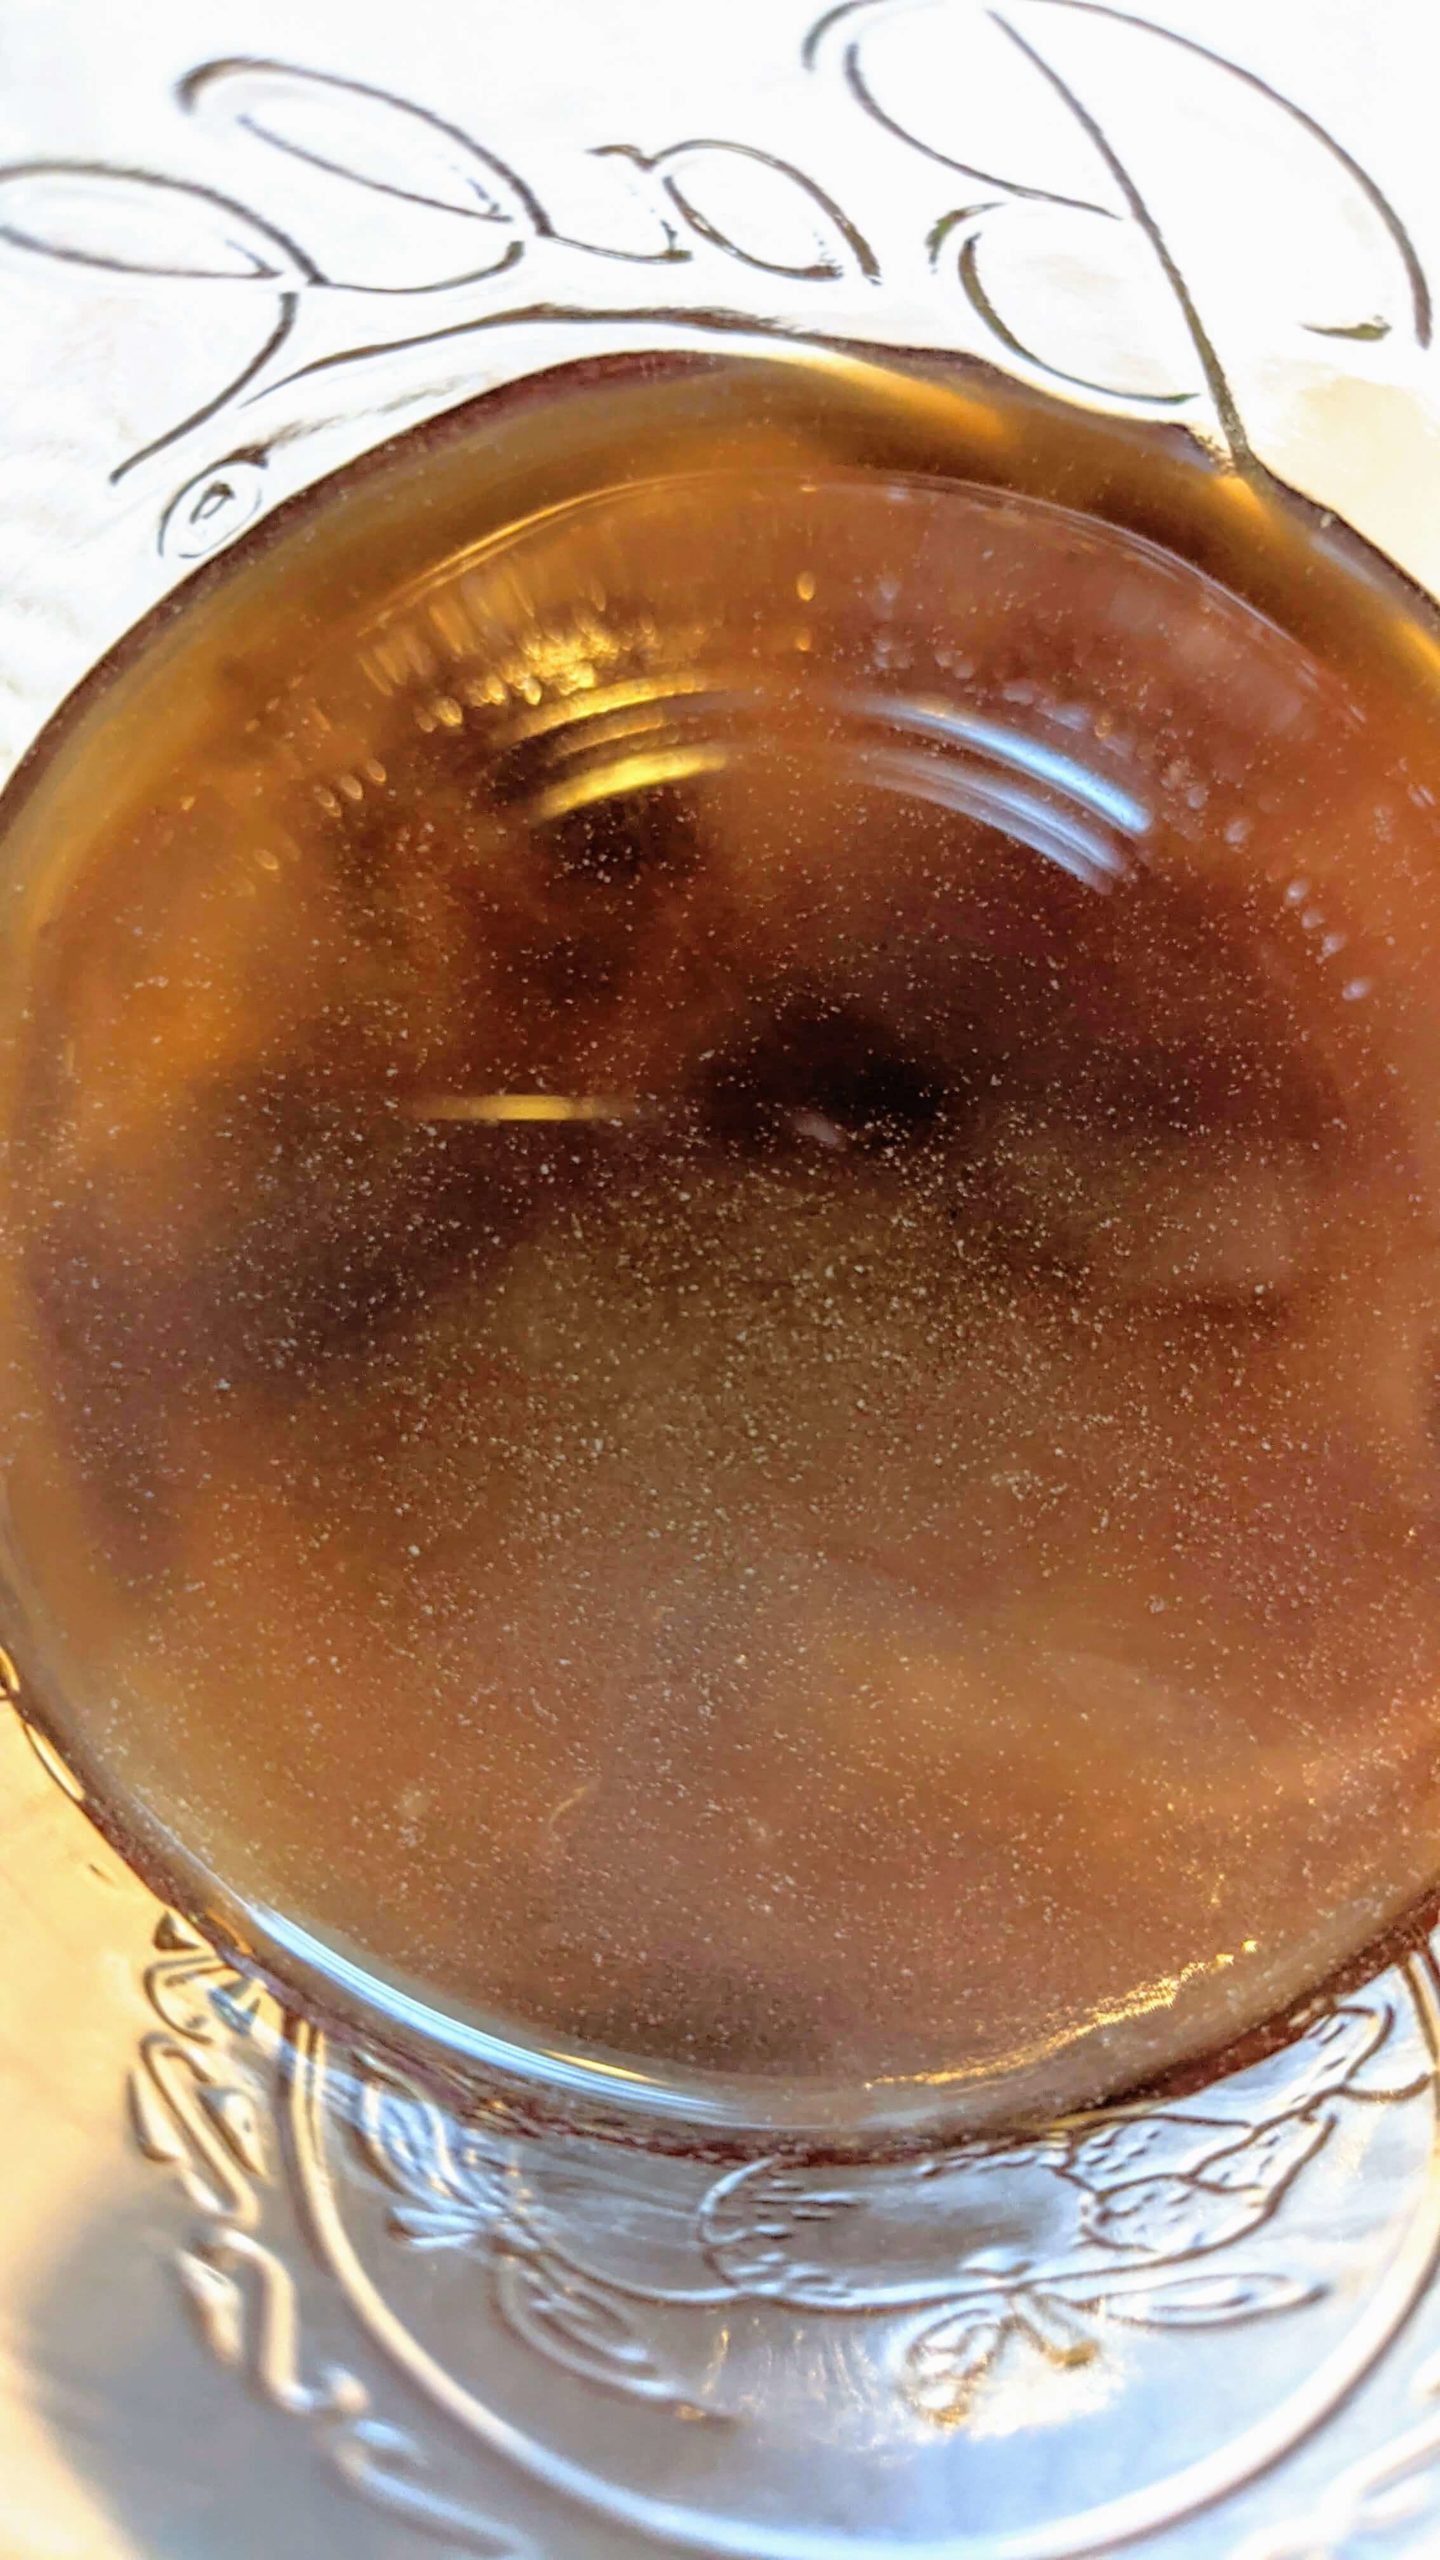 moldy scoby